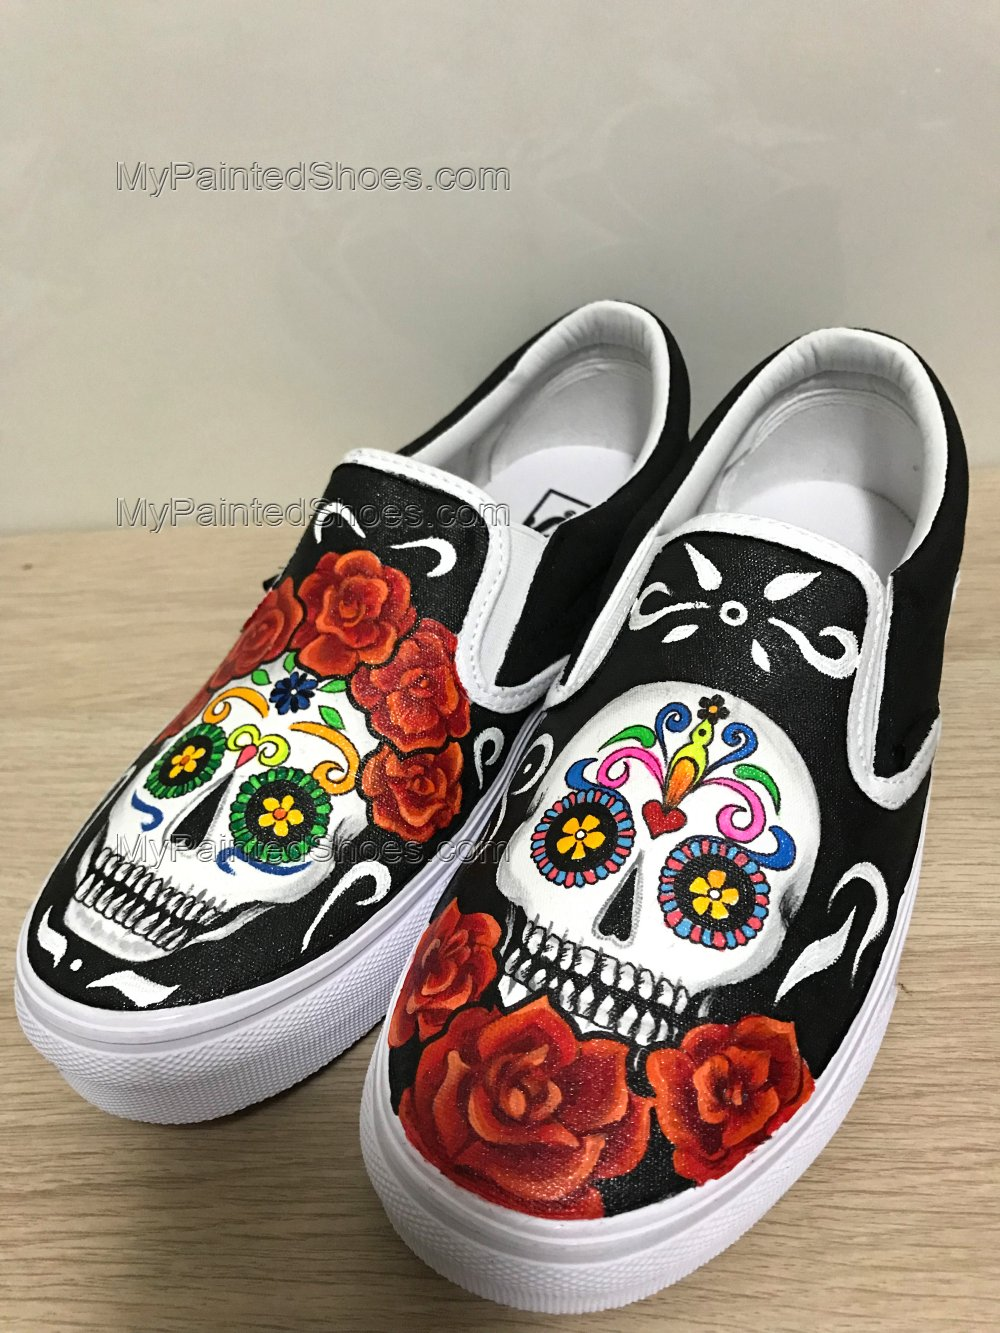 Skull Vans Shoes Custom Vans Sneakers-1